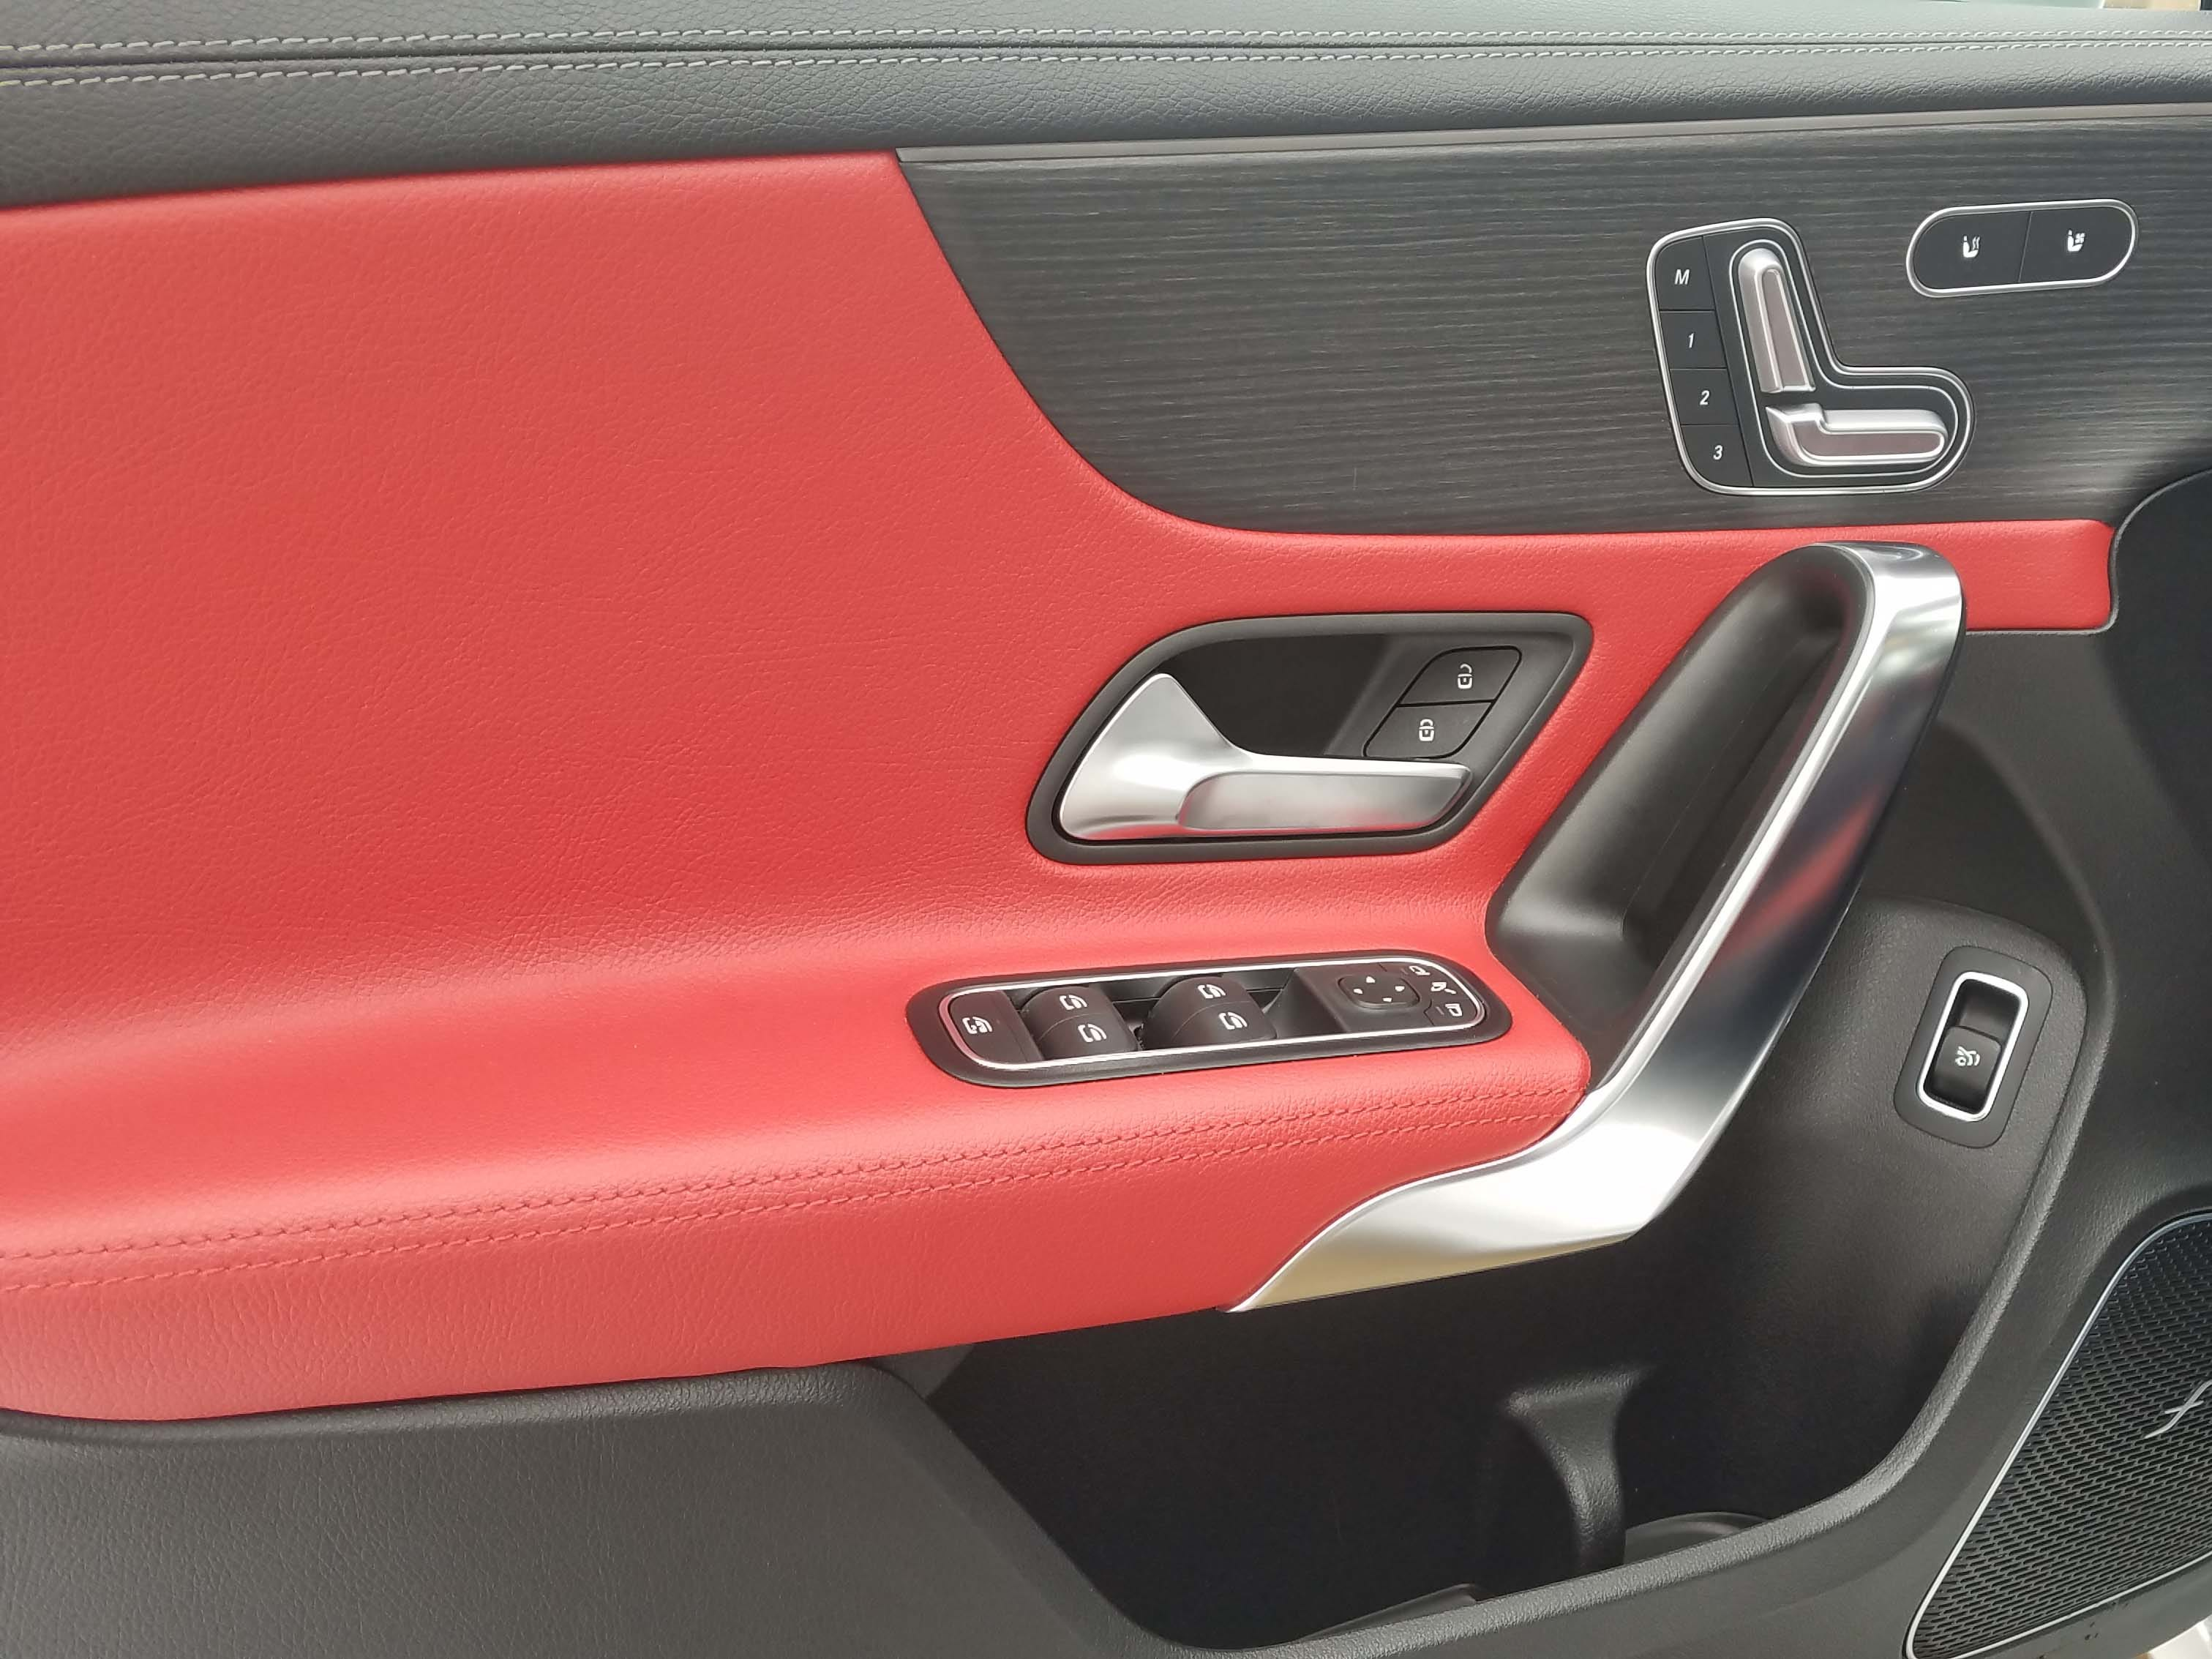 The door of the Mercedes A220 offers familiar Mercedes touches like seat adjustment and stylish design.